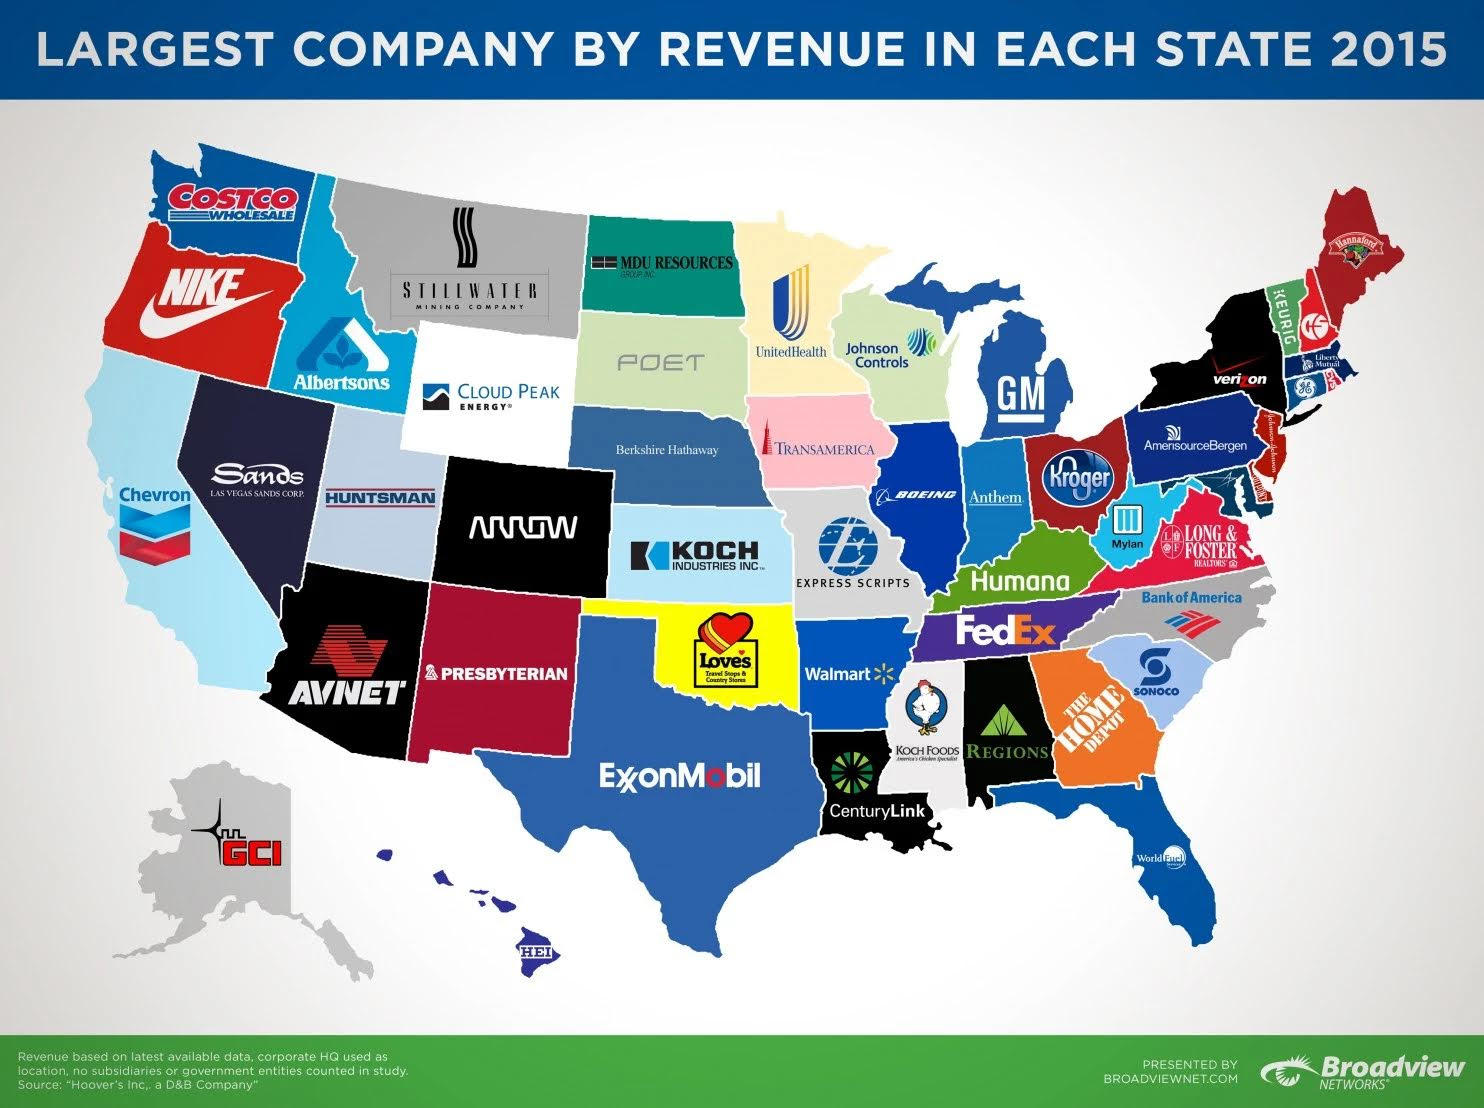 http://www.ritholtz.com/blog/2015/06/largest-company-by-revenue-in-each-state/